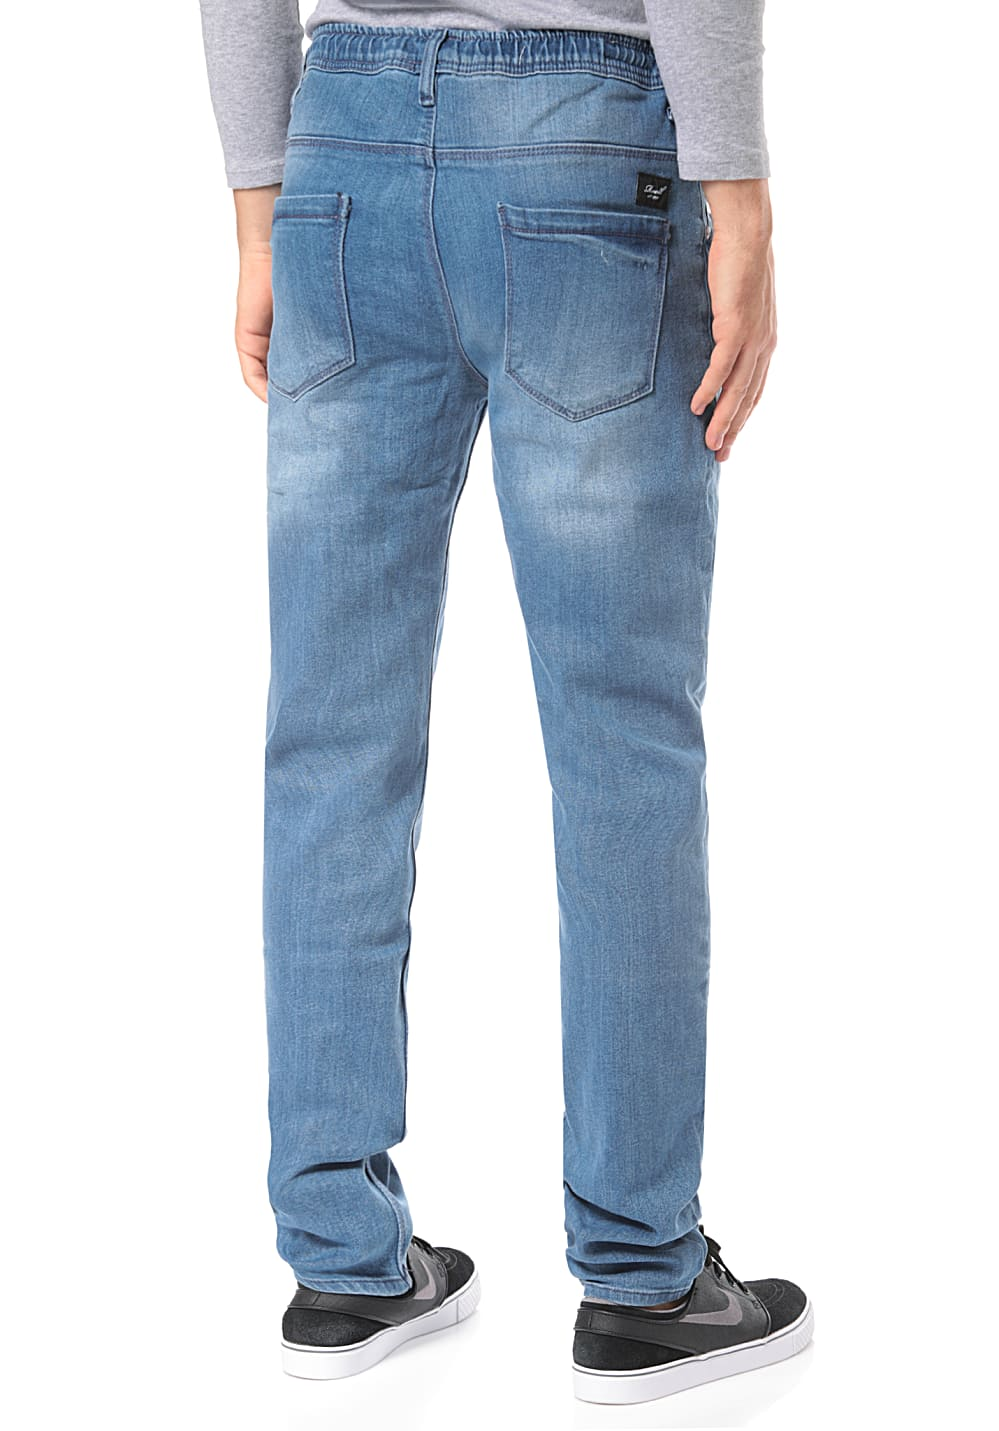 9a60892737a52 Reell Jogger - Jeans - Blau - Planet Sports